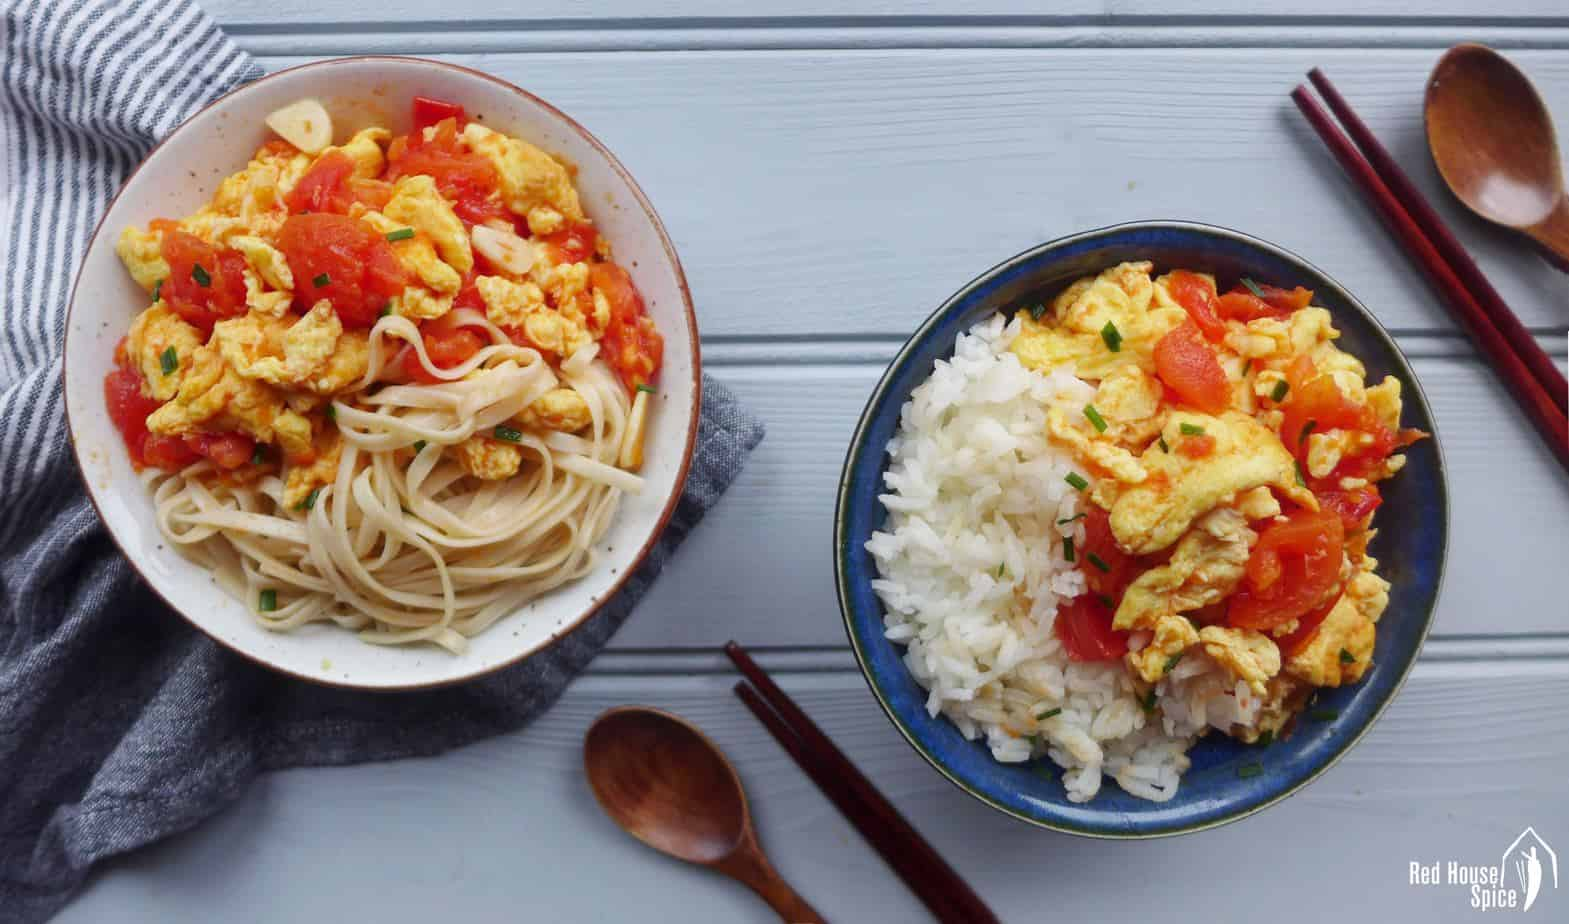 Tomato and egg stir fry red house spice forumfinder Choice Image